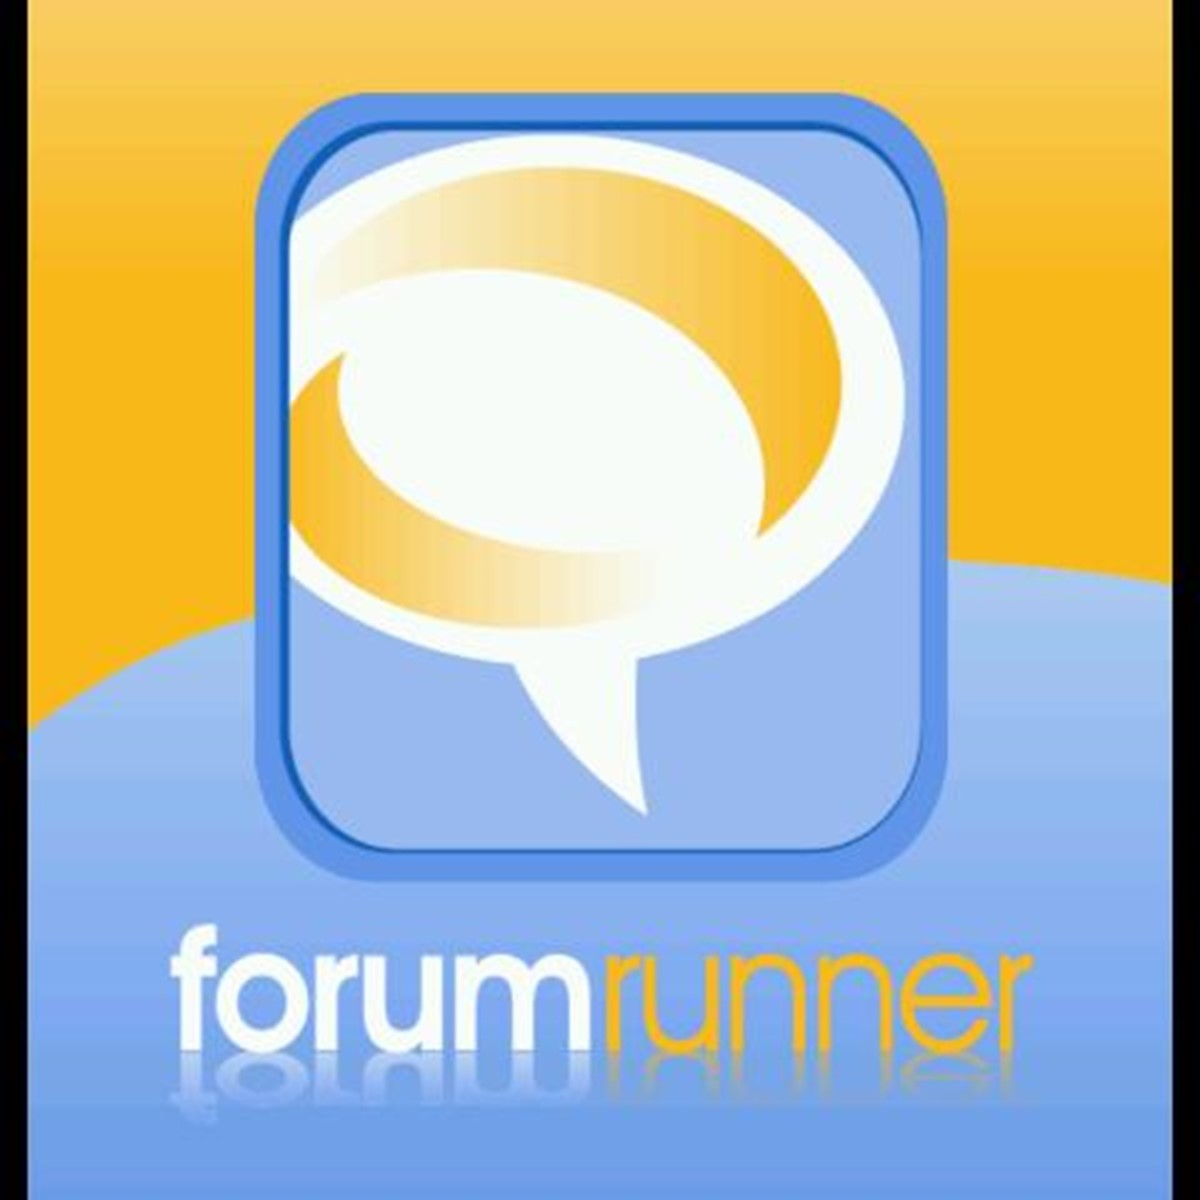 Forum runner android games